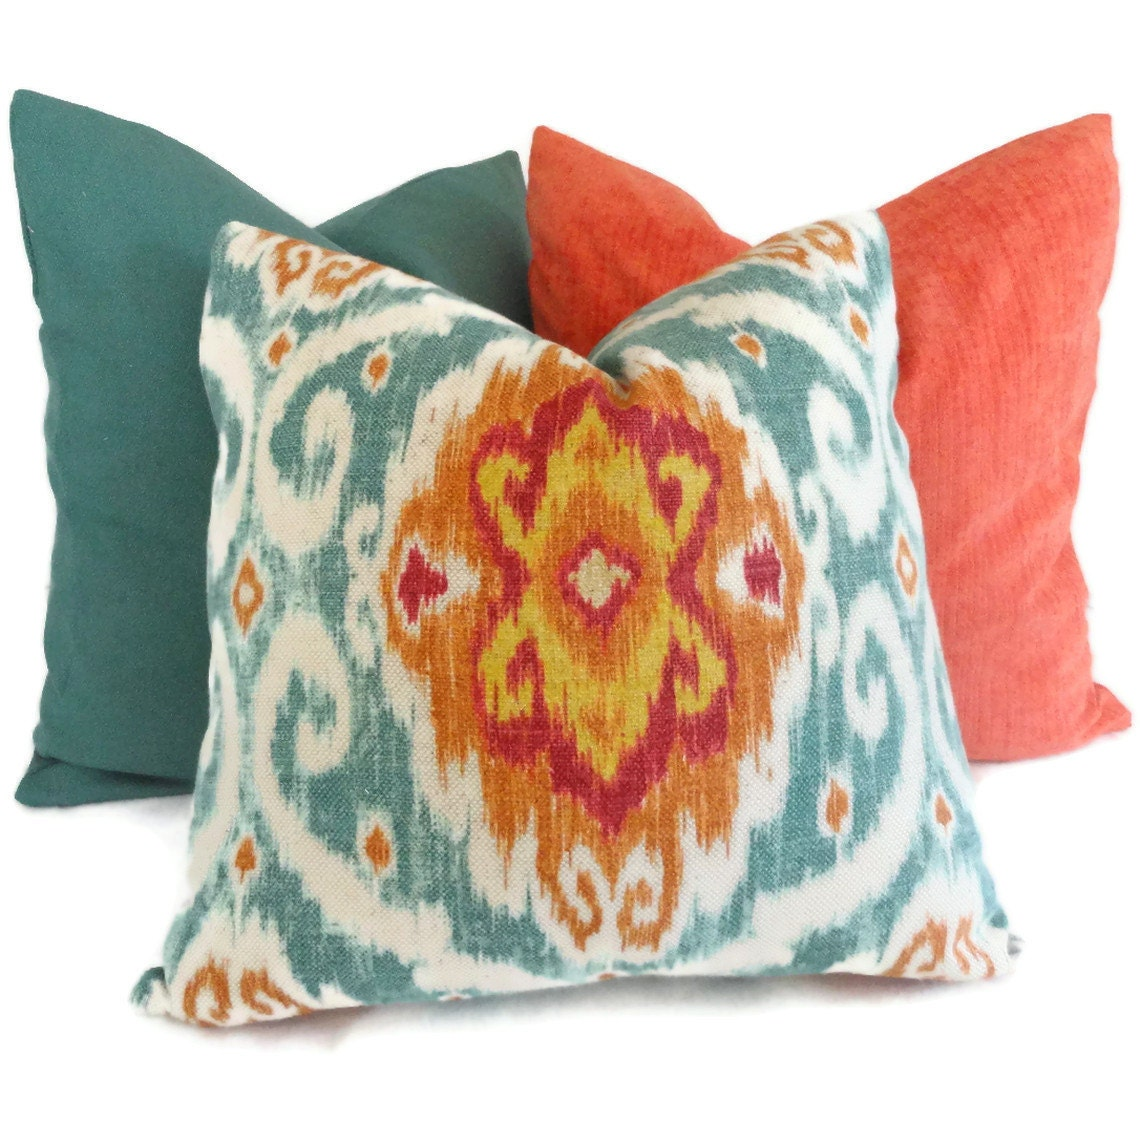 Decorative Pillows In Turquoise : Iman Turquoise and Orange Ikat Decorative Pillow Cover 18x18